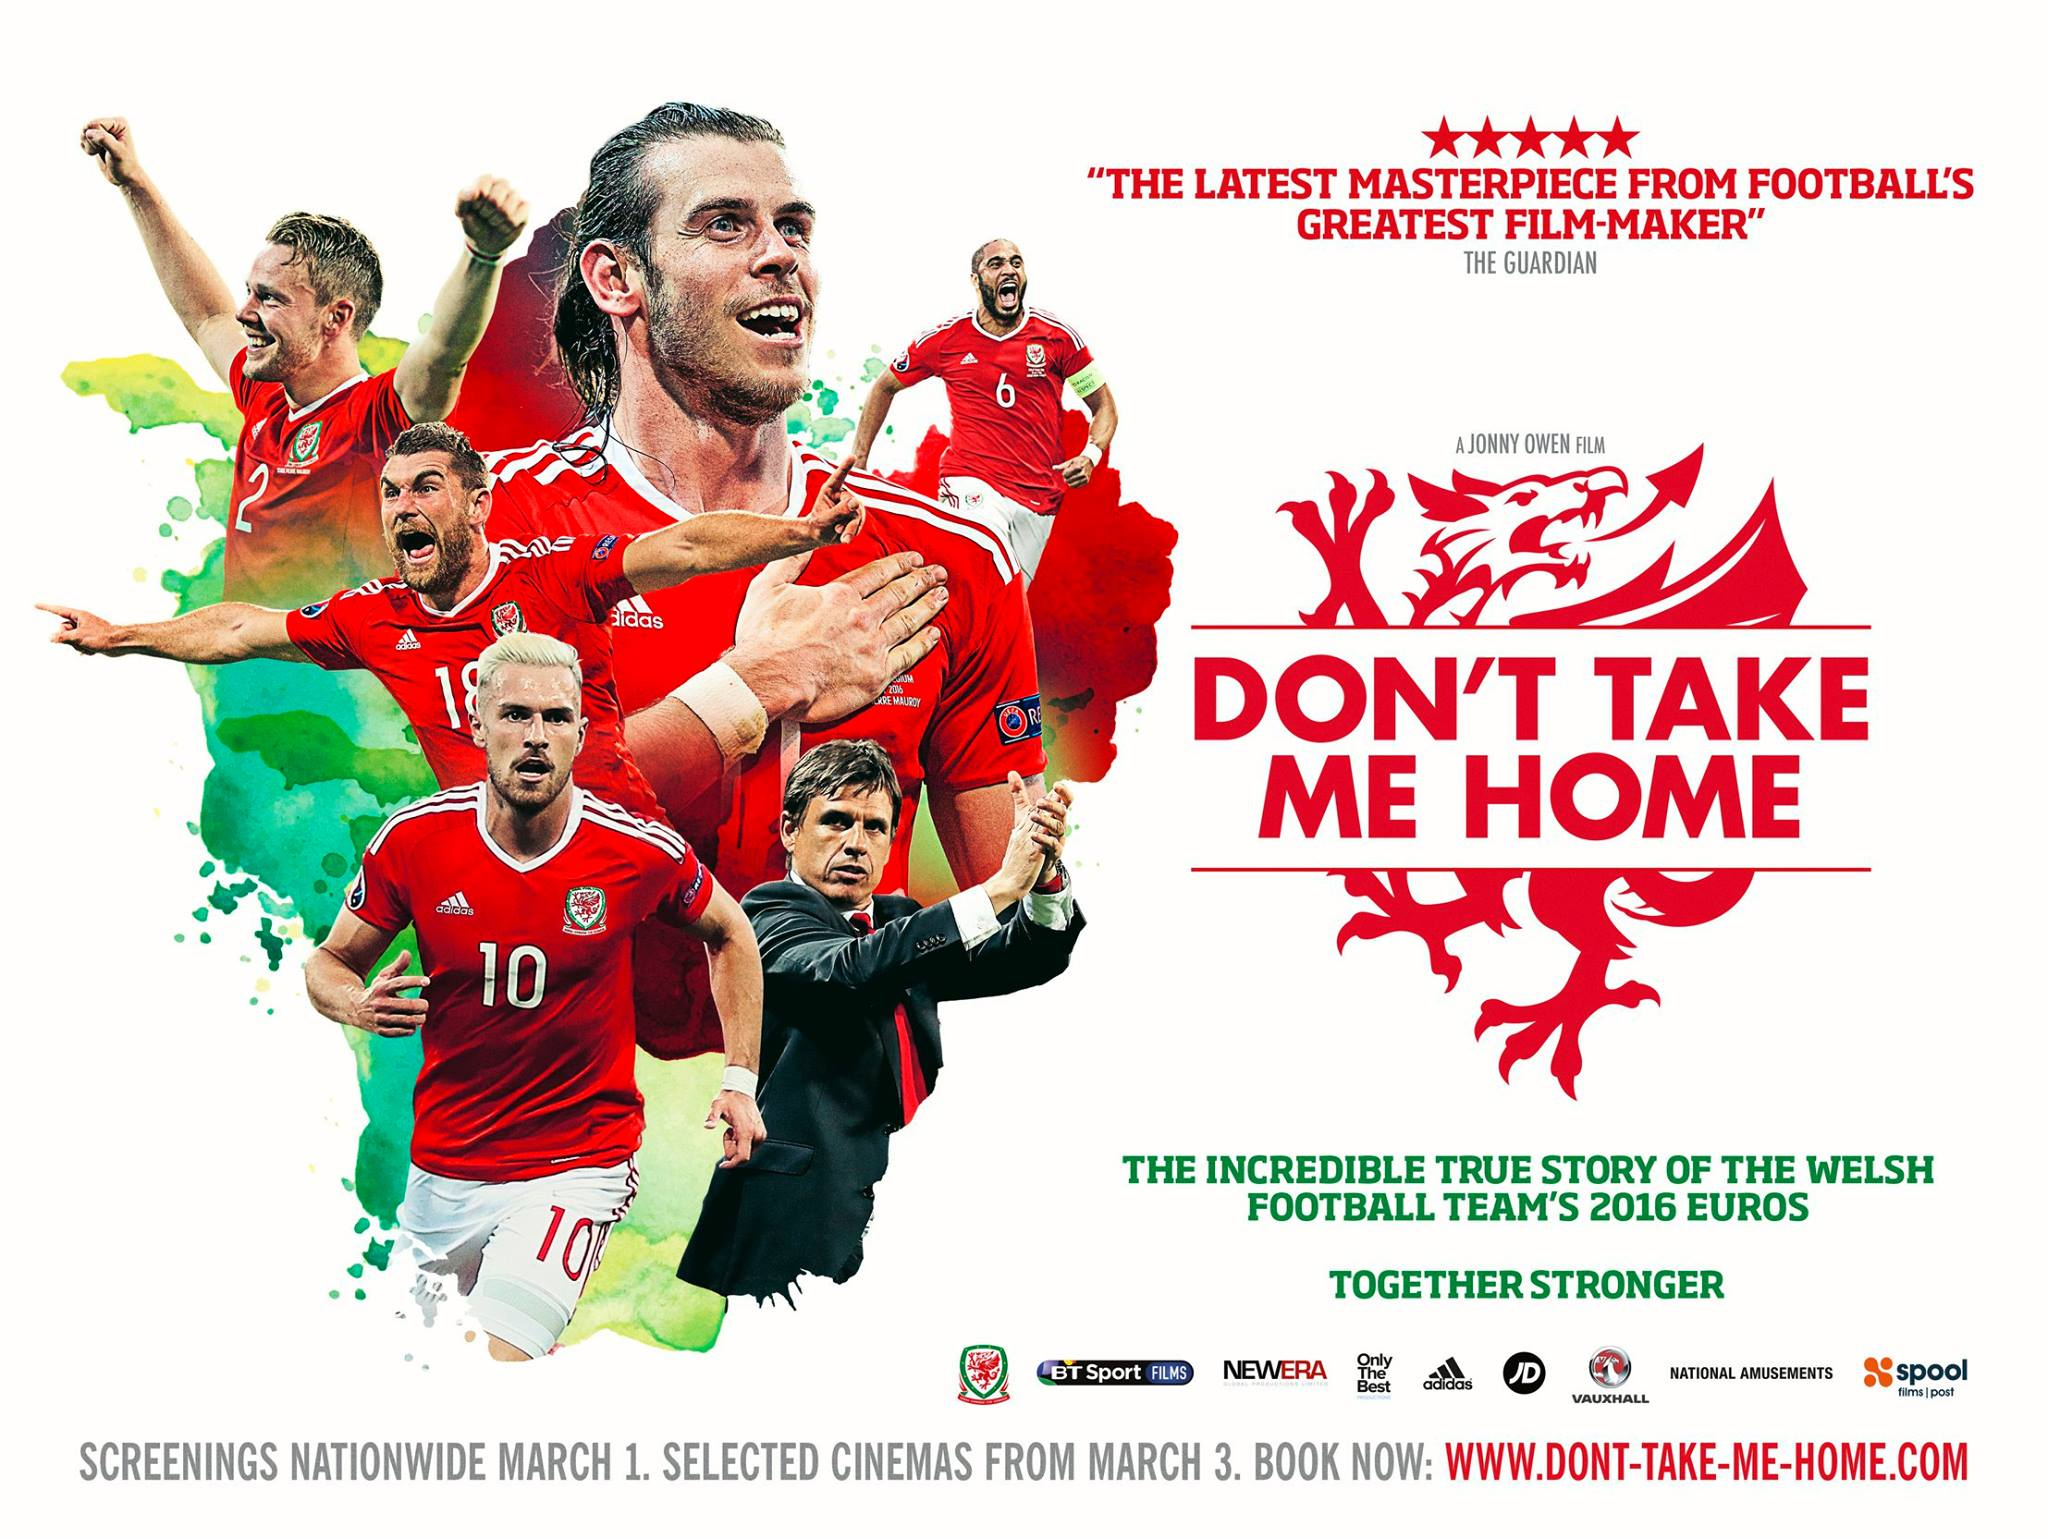 Don't take me home poster design by C&C sport documentary 2016